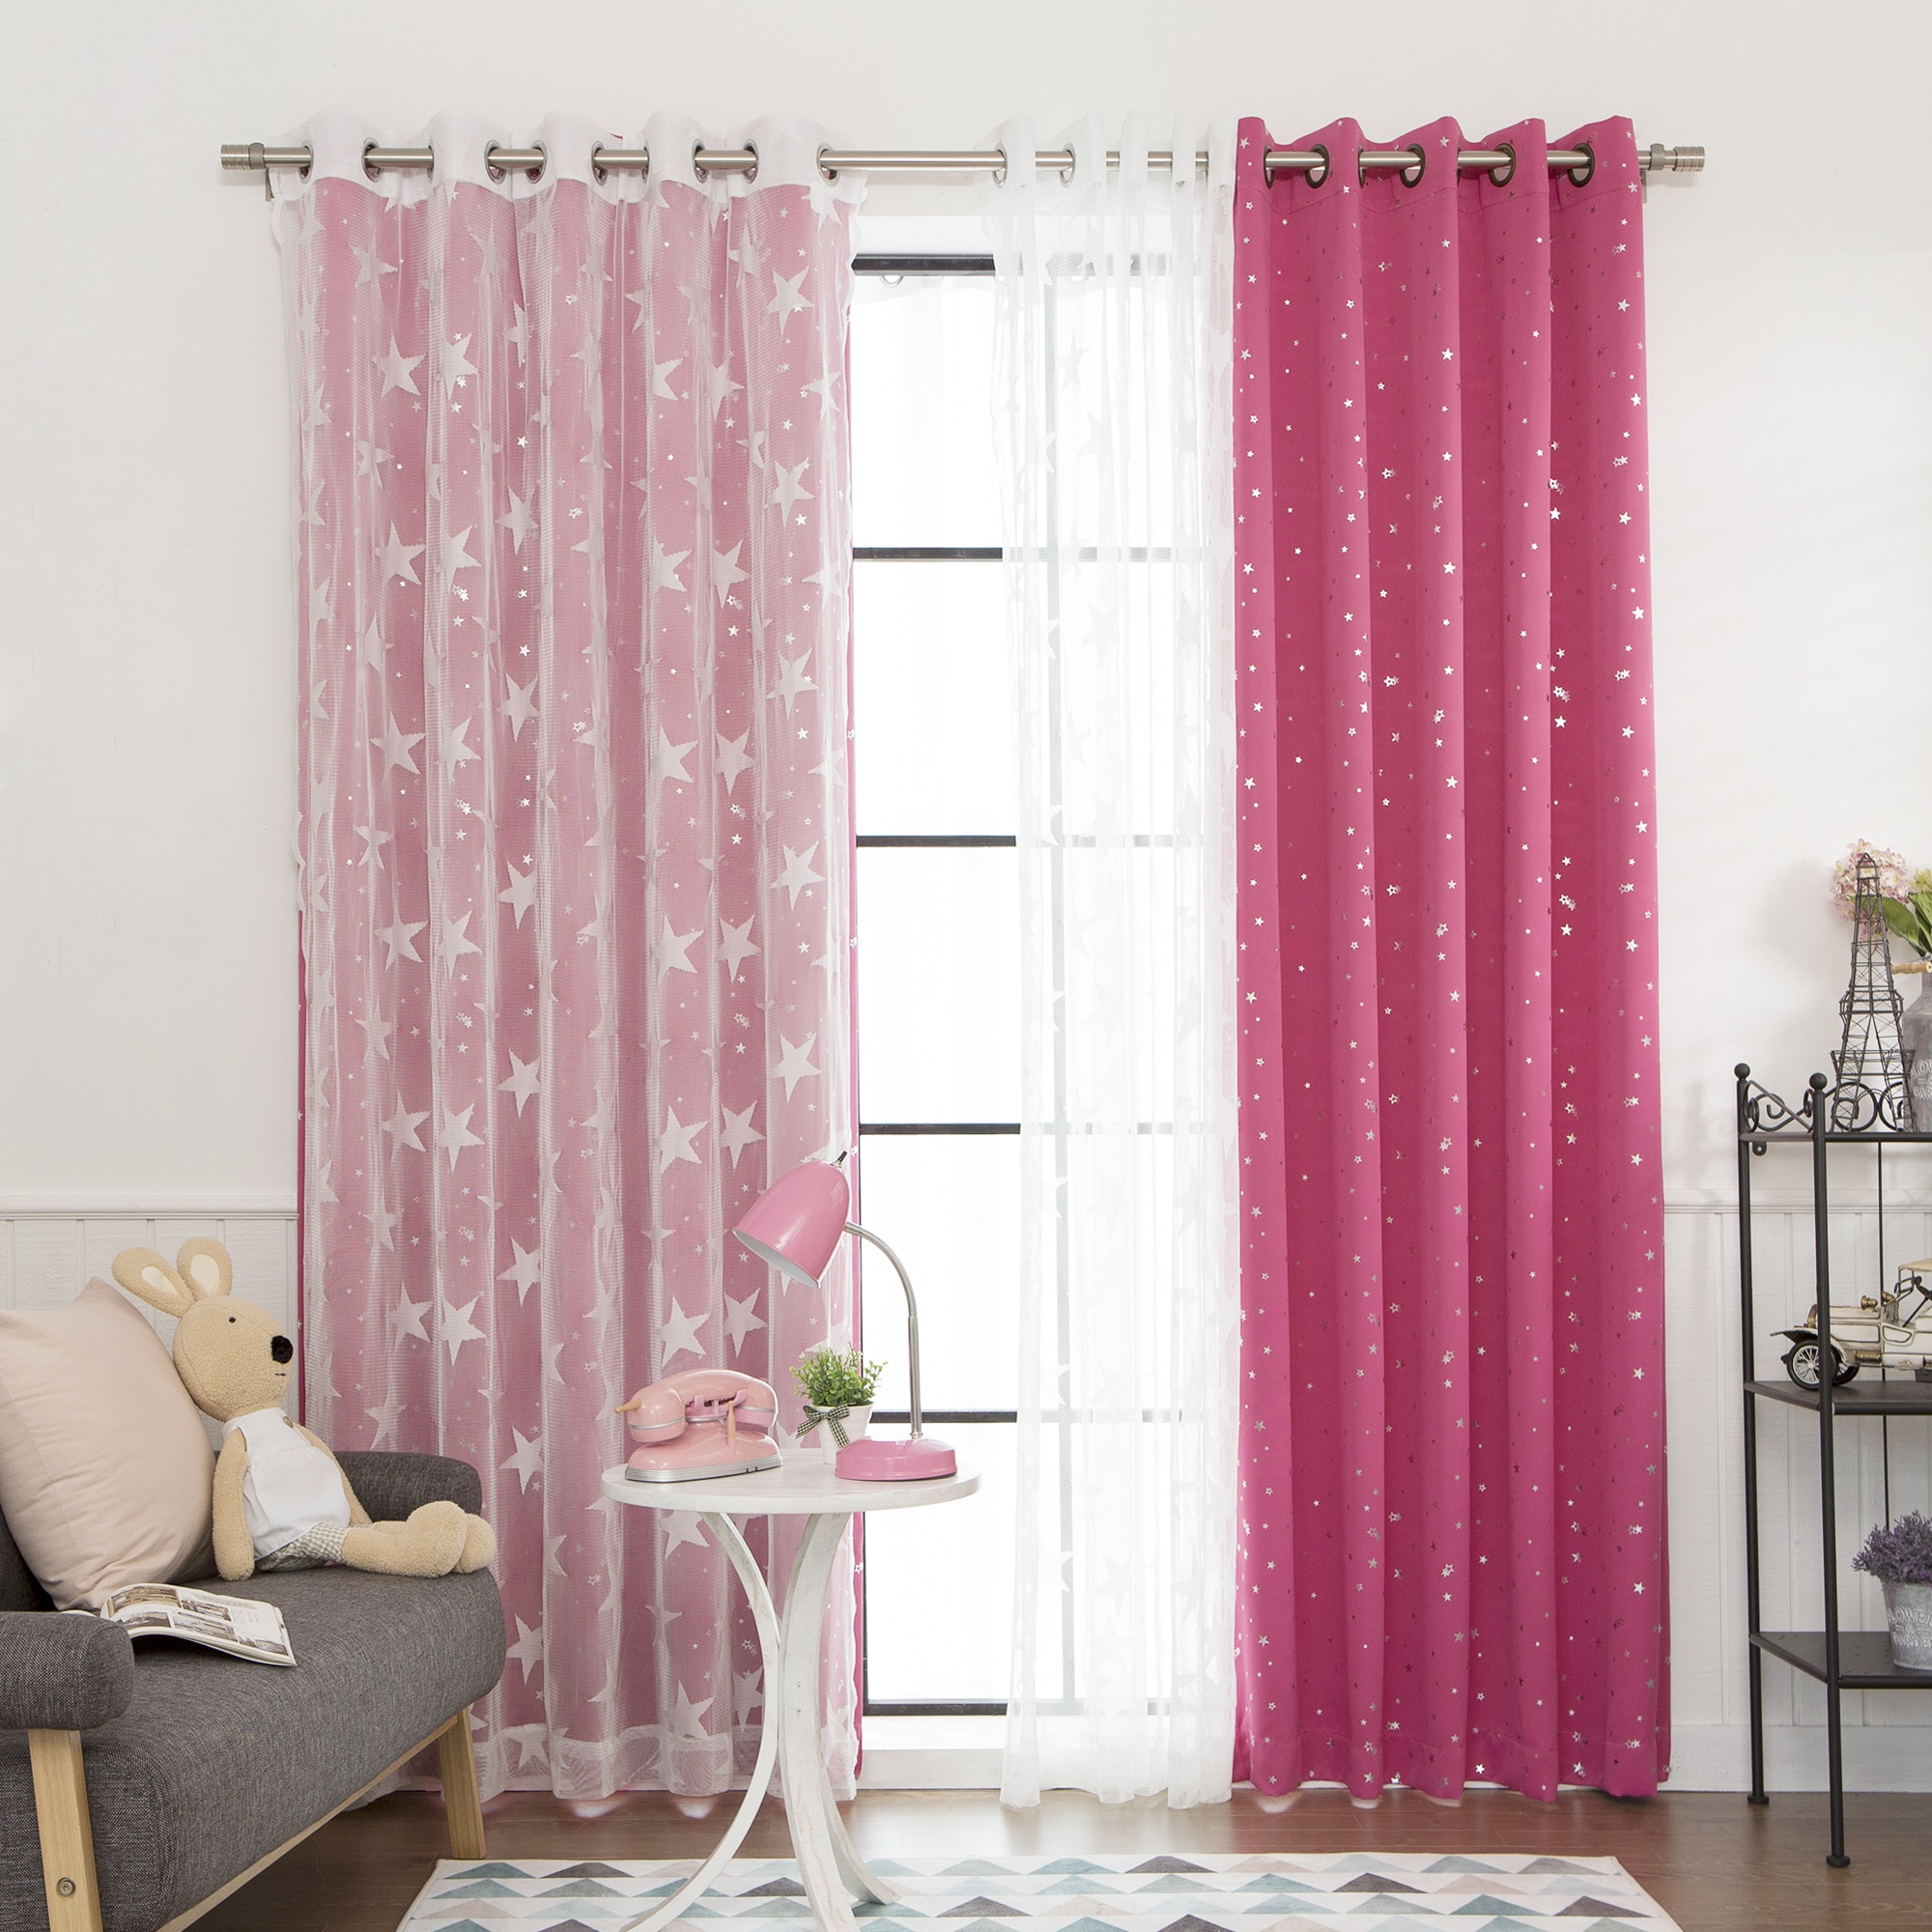 Curtains B Amp Q Www Myfamilyliving Com